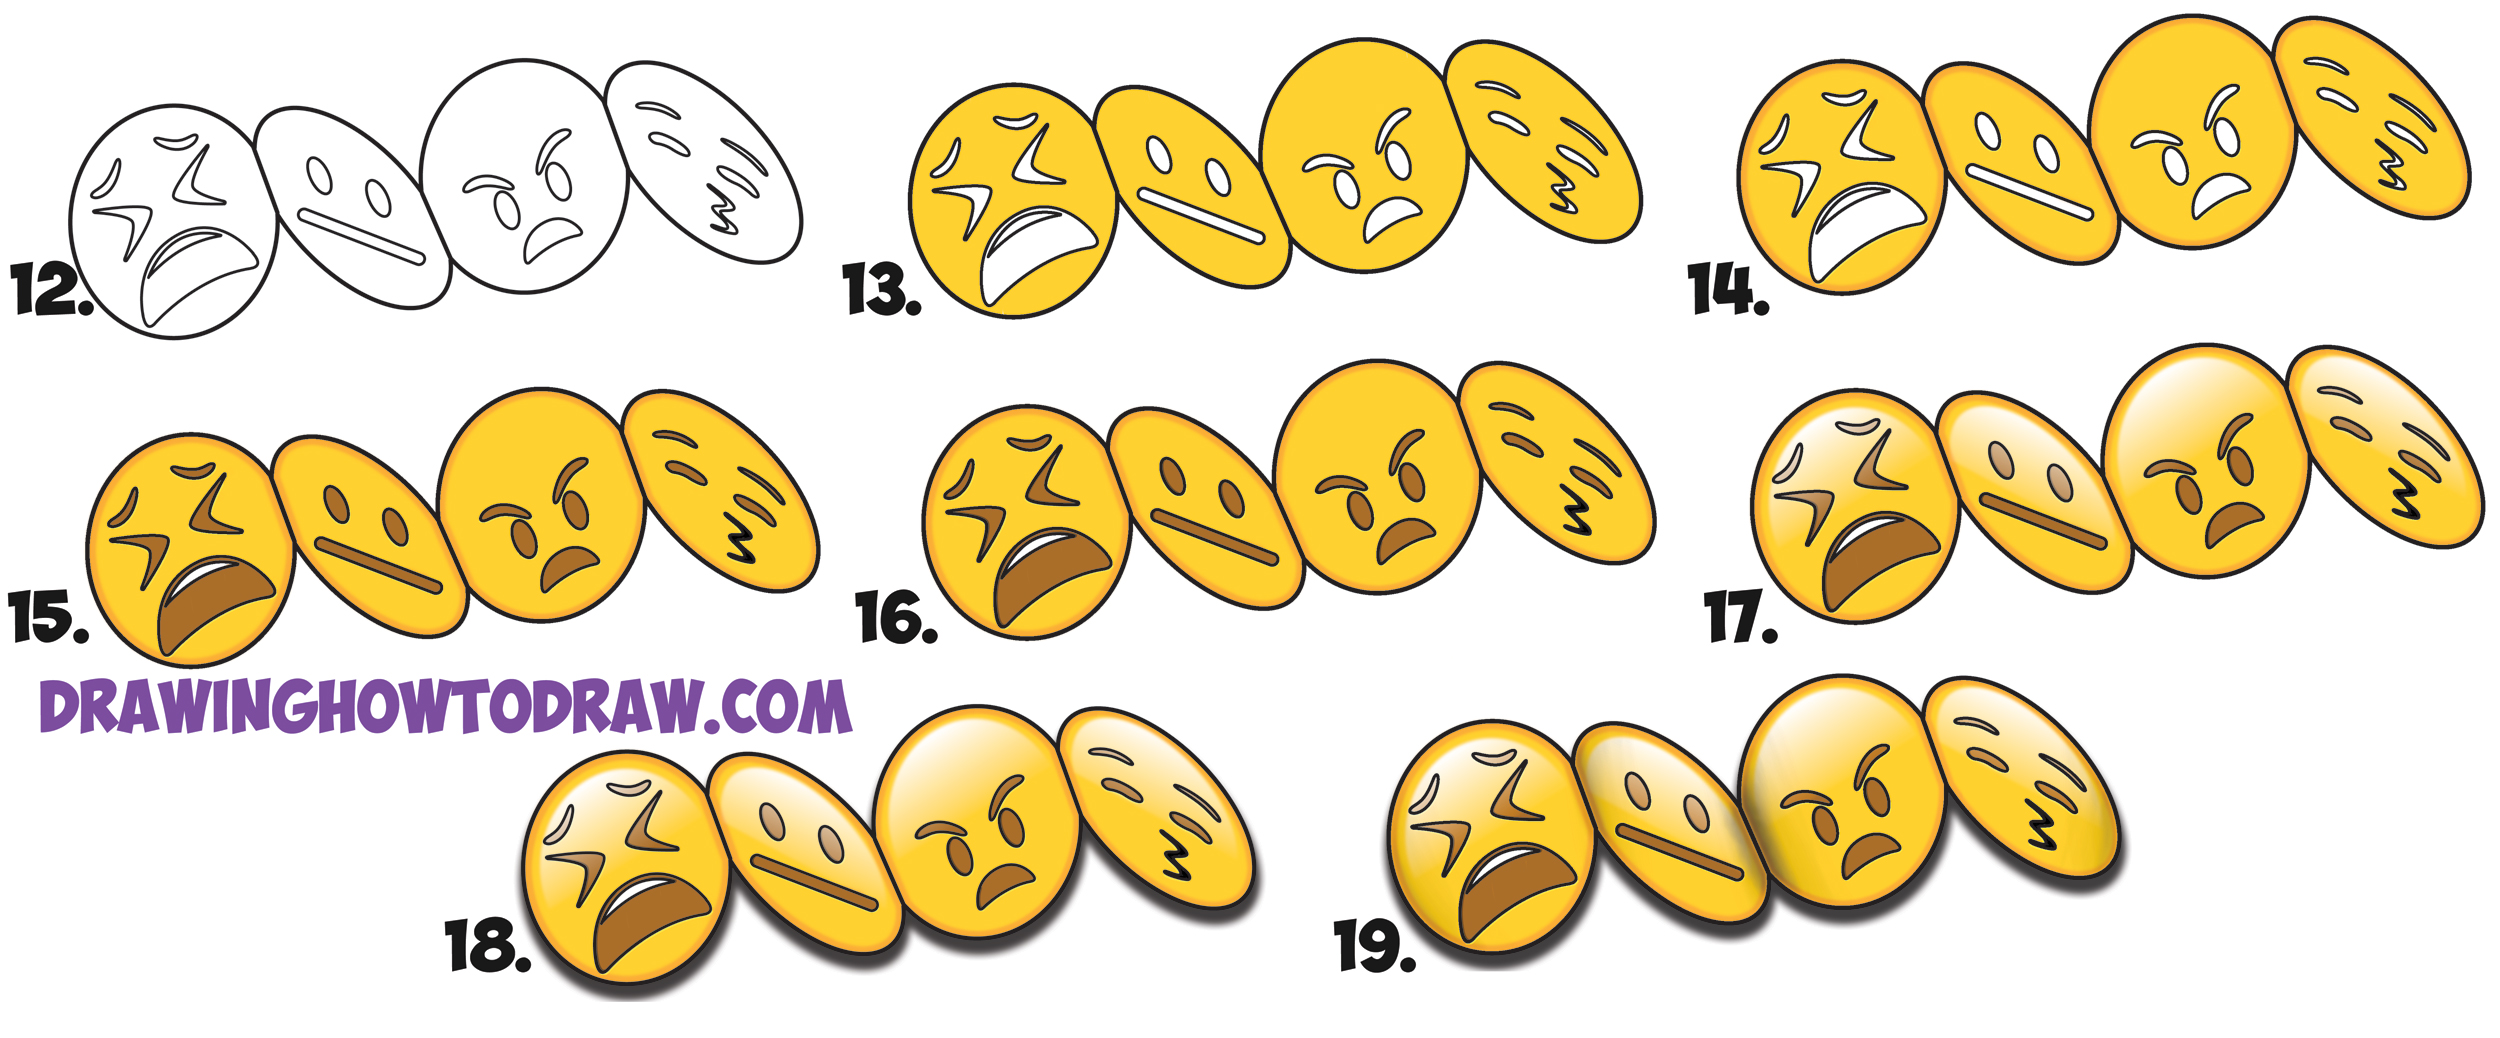 Learn How to Draw Cool 3D Emojis Stuck Together in Accordion Fold Simple Steps Drawing Lesson for Beginners